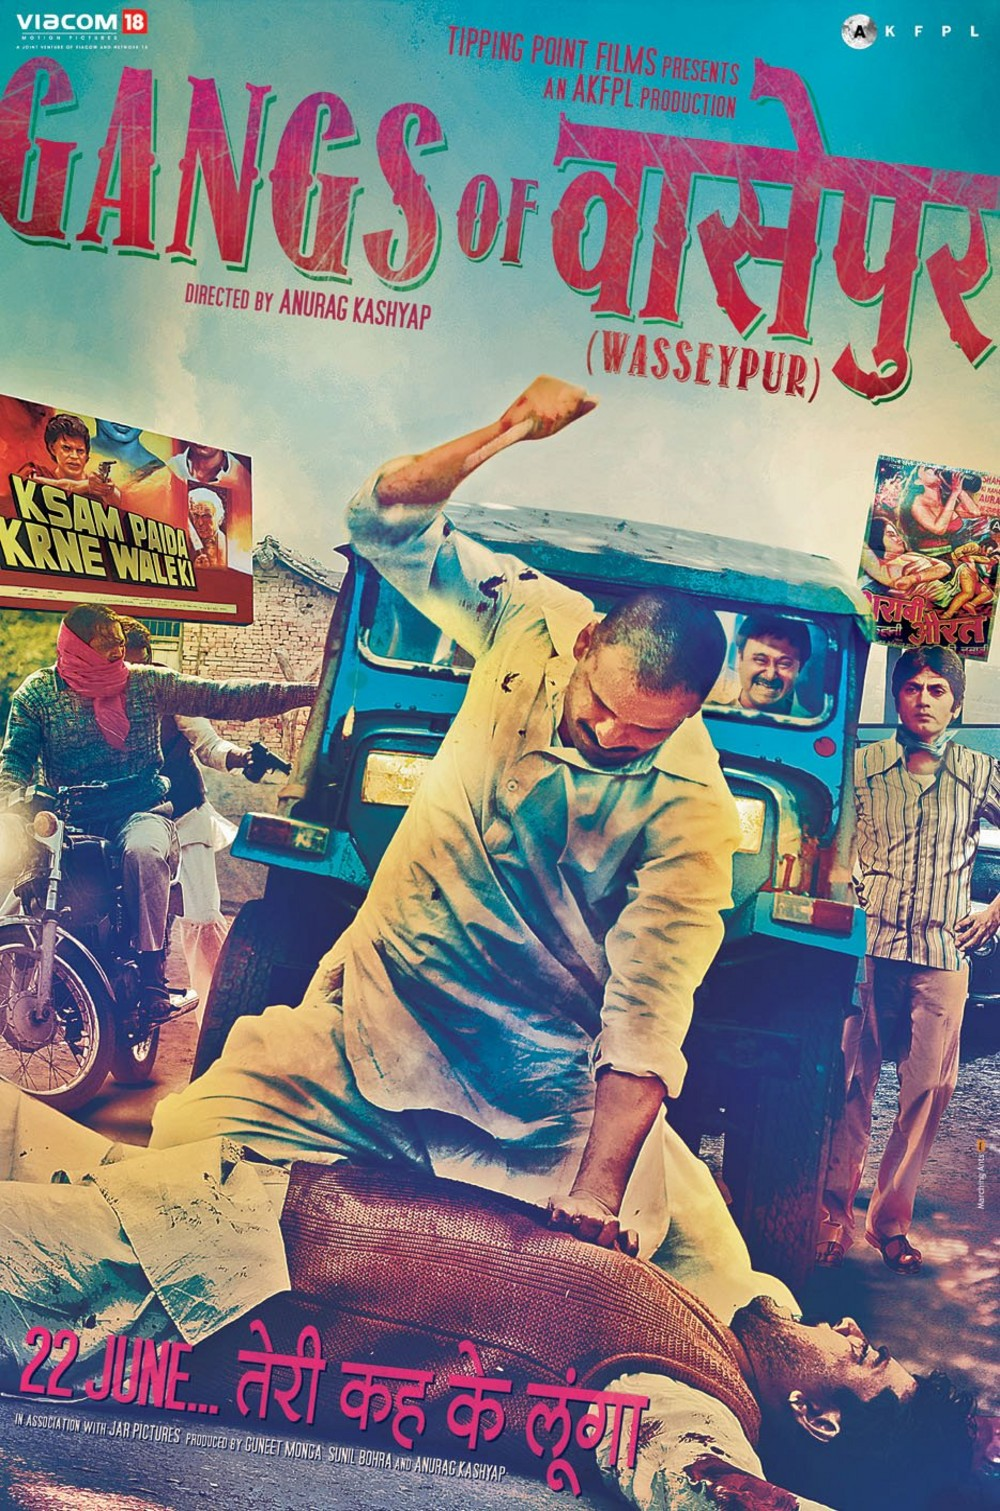 Gangs Of Wasseypur - Movie Poster #1 (Original)